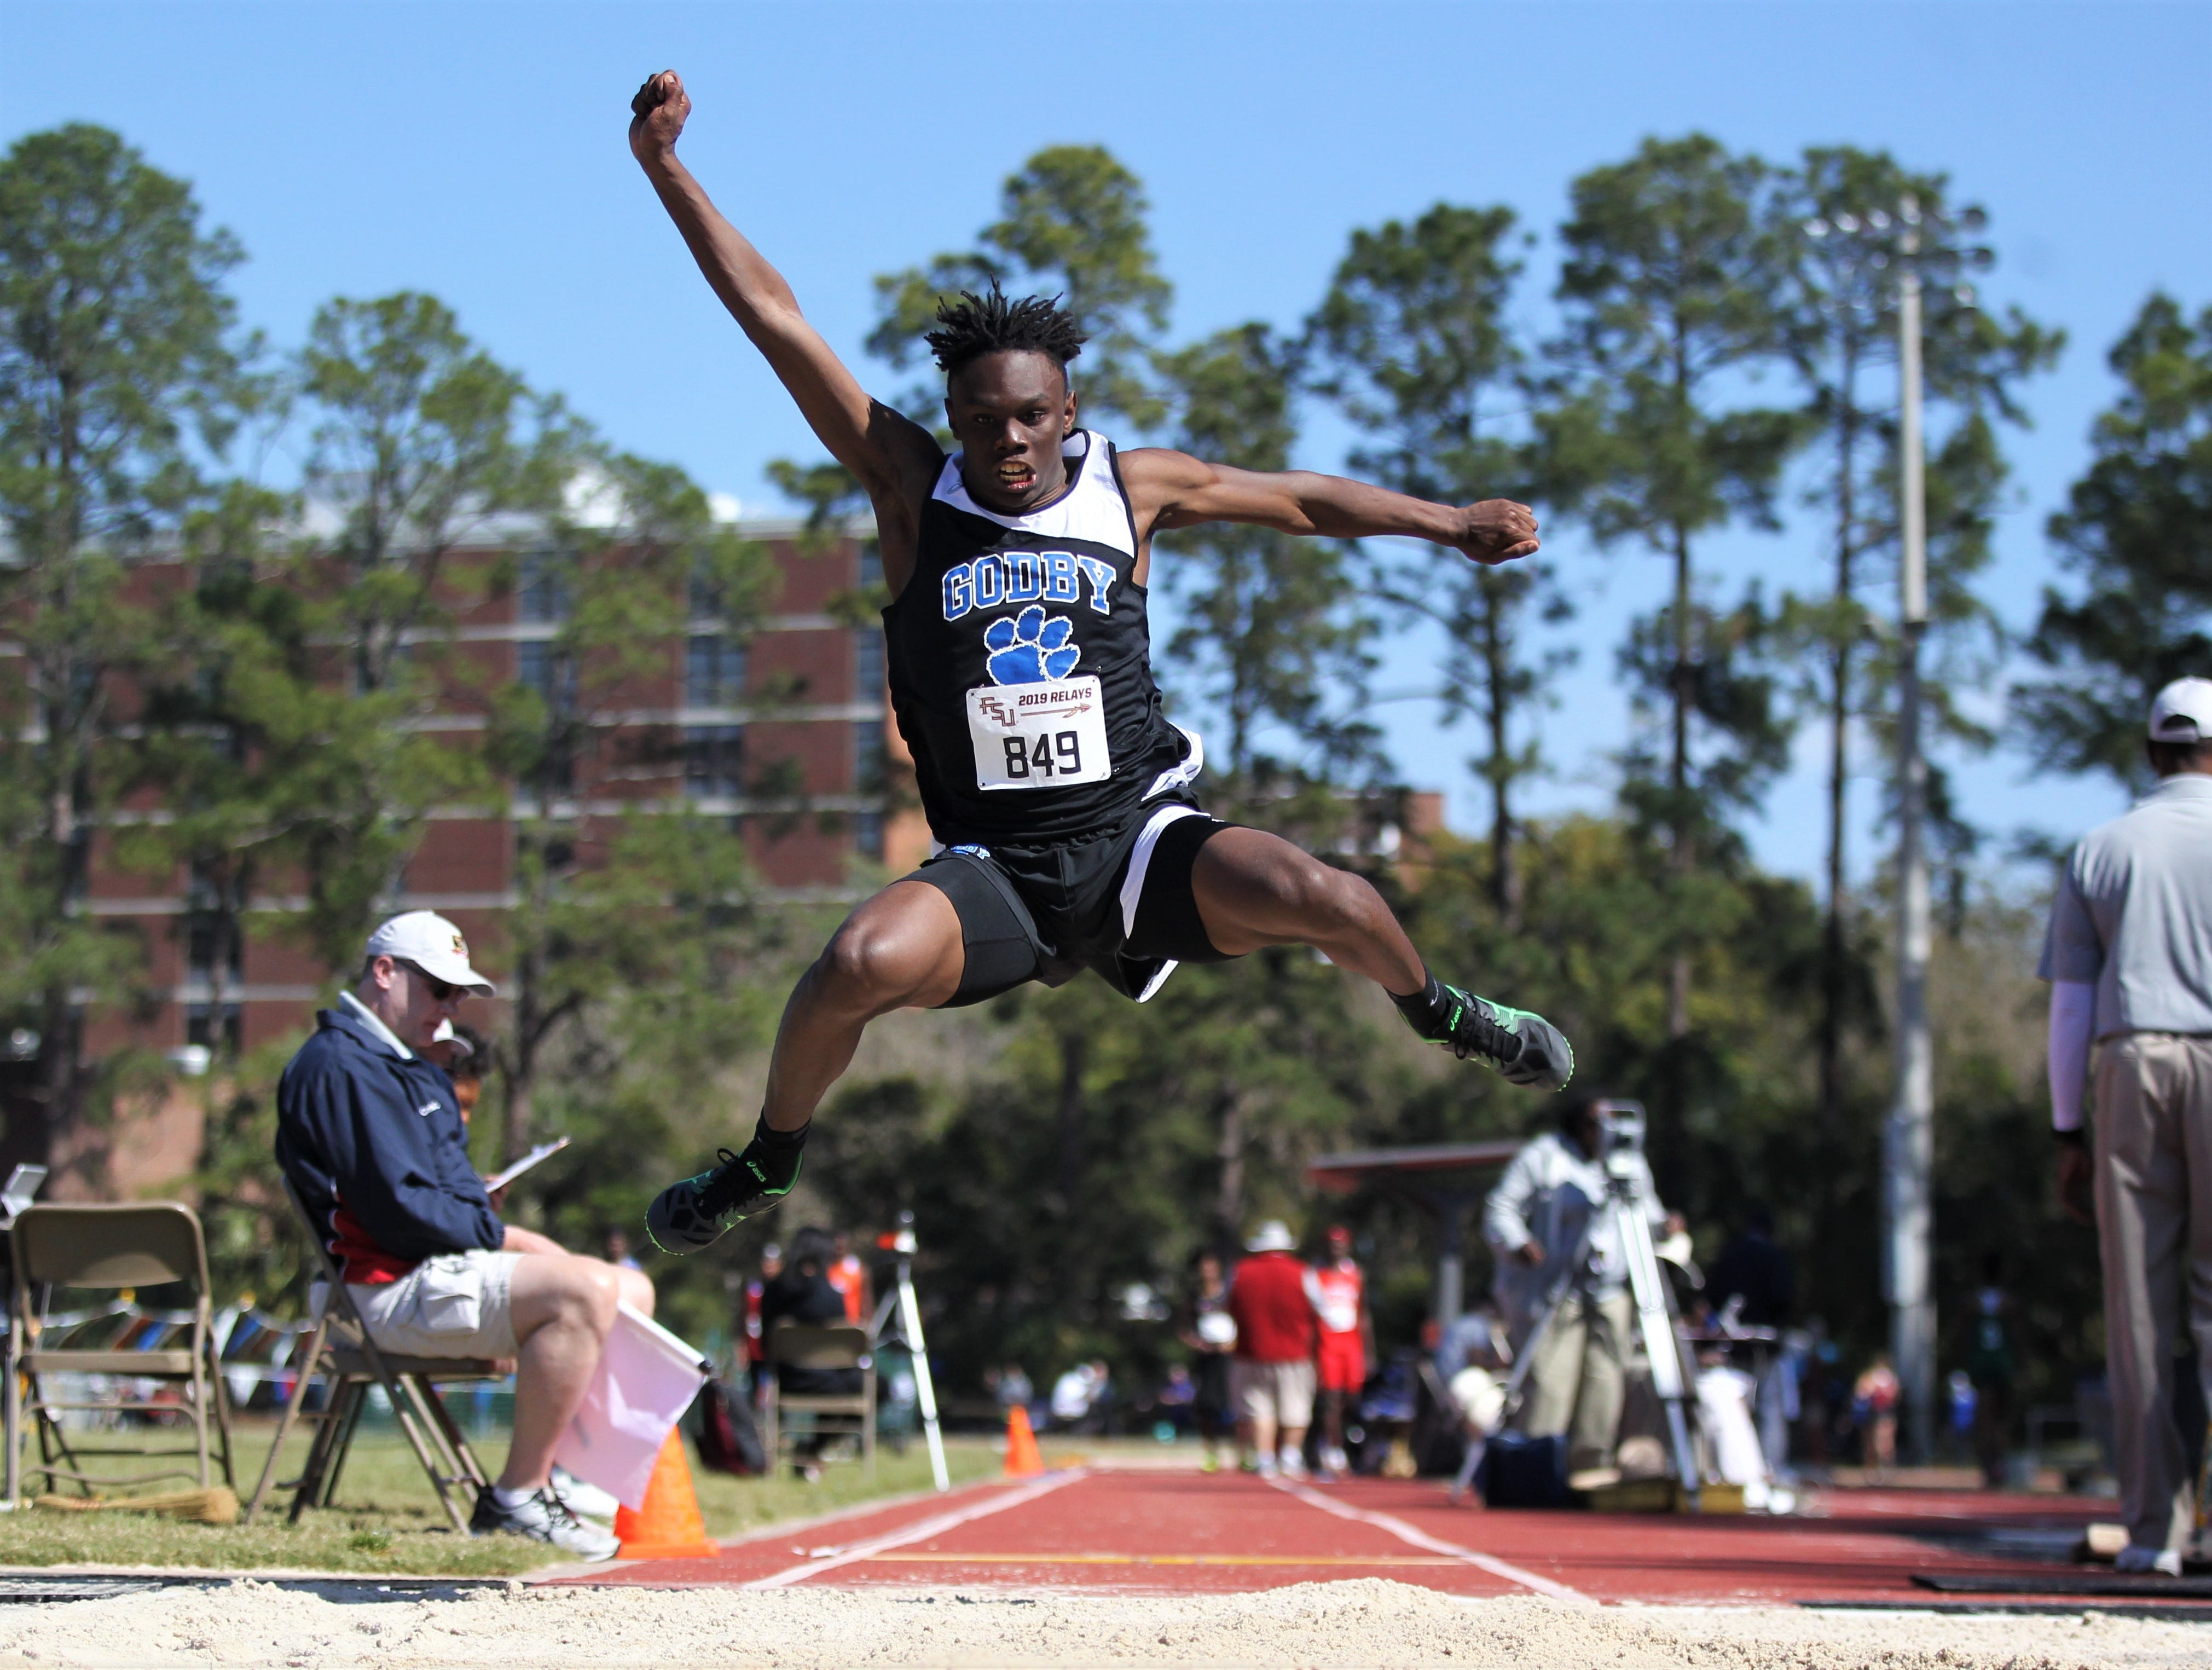 Godby junior Deshawn Rucker long jumps during the 40th annual FSU Relays at Mike Long Track on Saturday, March 23, 2019.